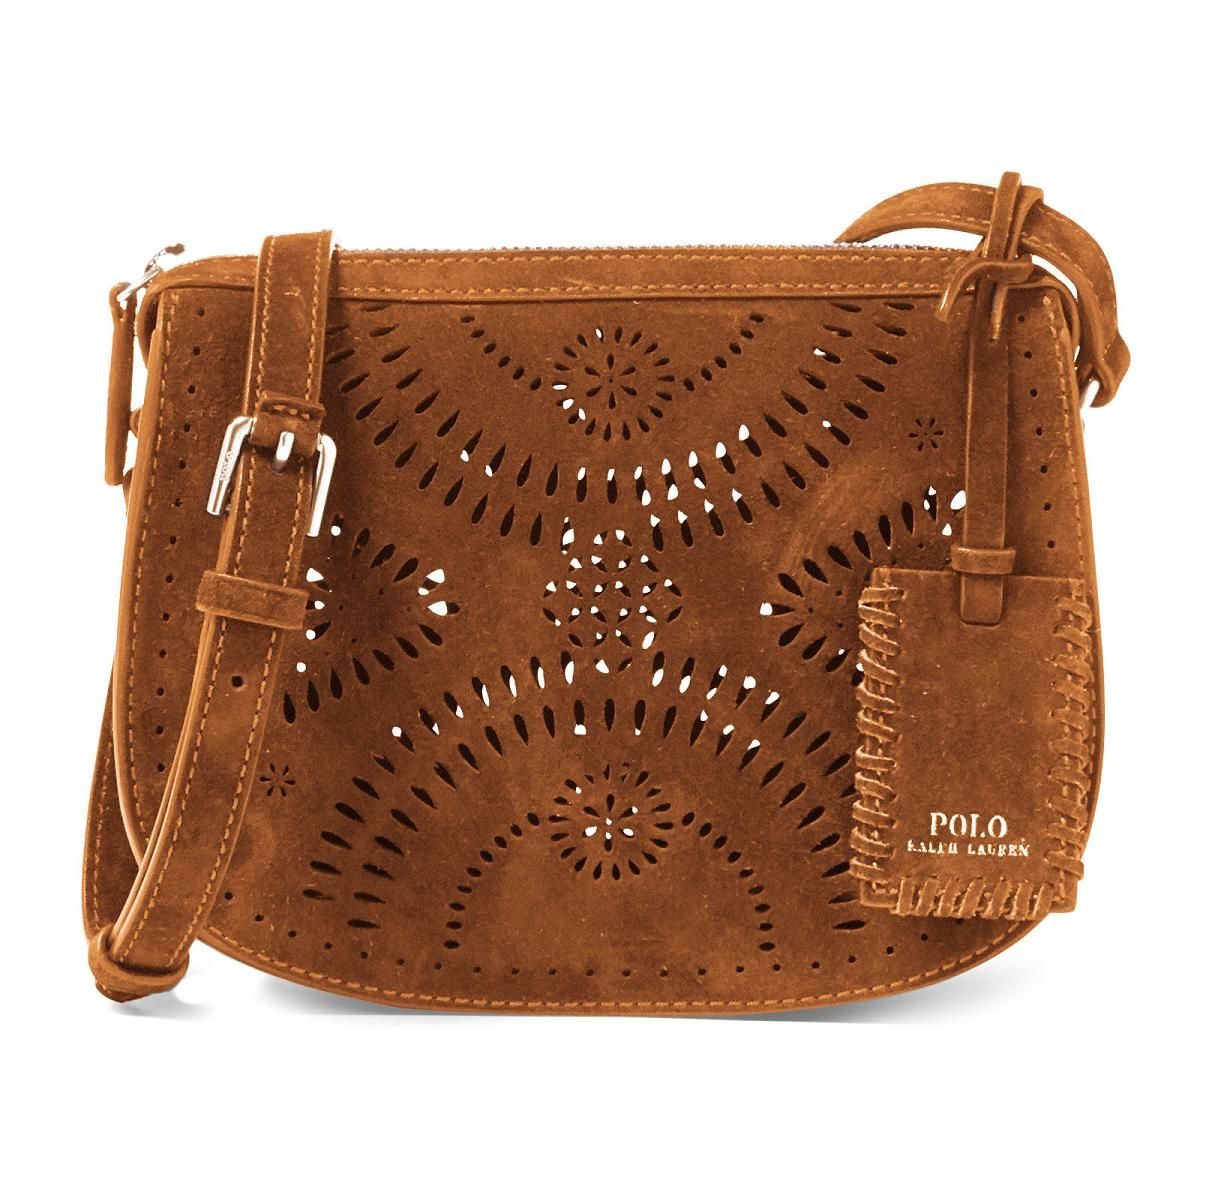 ed1173a2457f Polo Ralph Lauren Mini Suede Cross-Body Bag